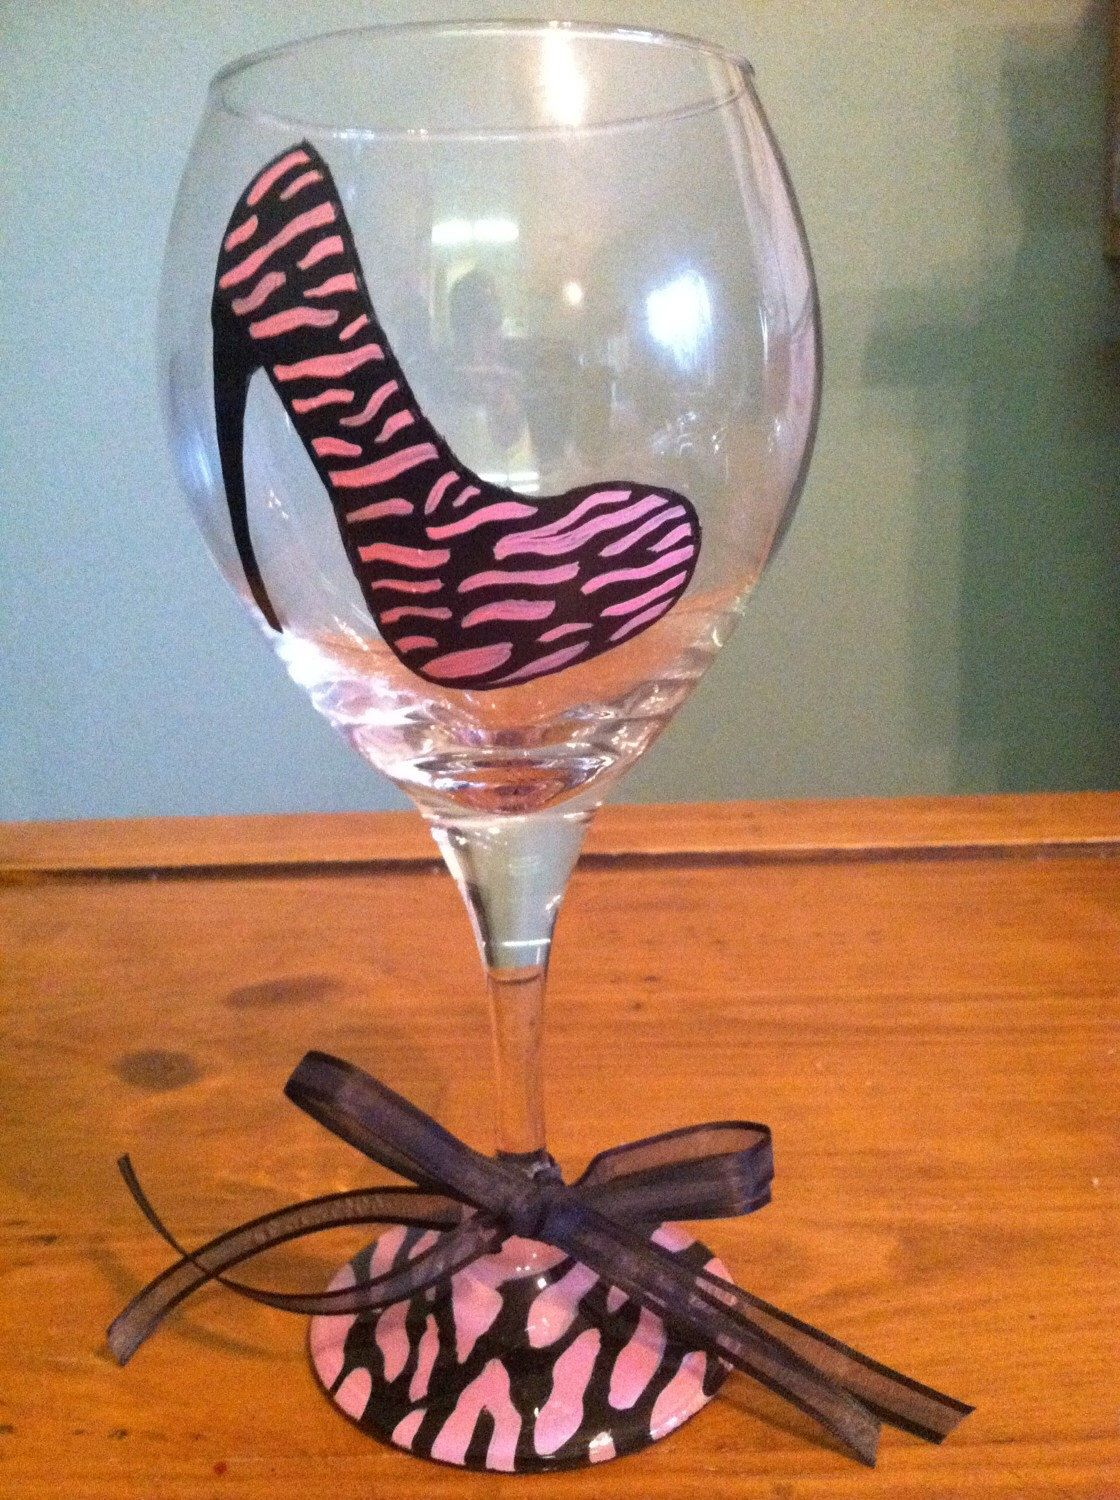 How to decorate wine glasses for bridesmaids - High Heel Shoe Bachelorette Party Painted Wine Glasses Bridesmaid Wine Glass With High Heeled Shoe Animal